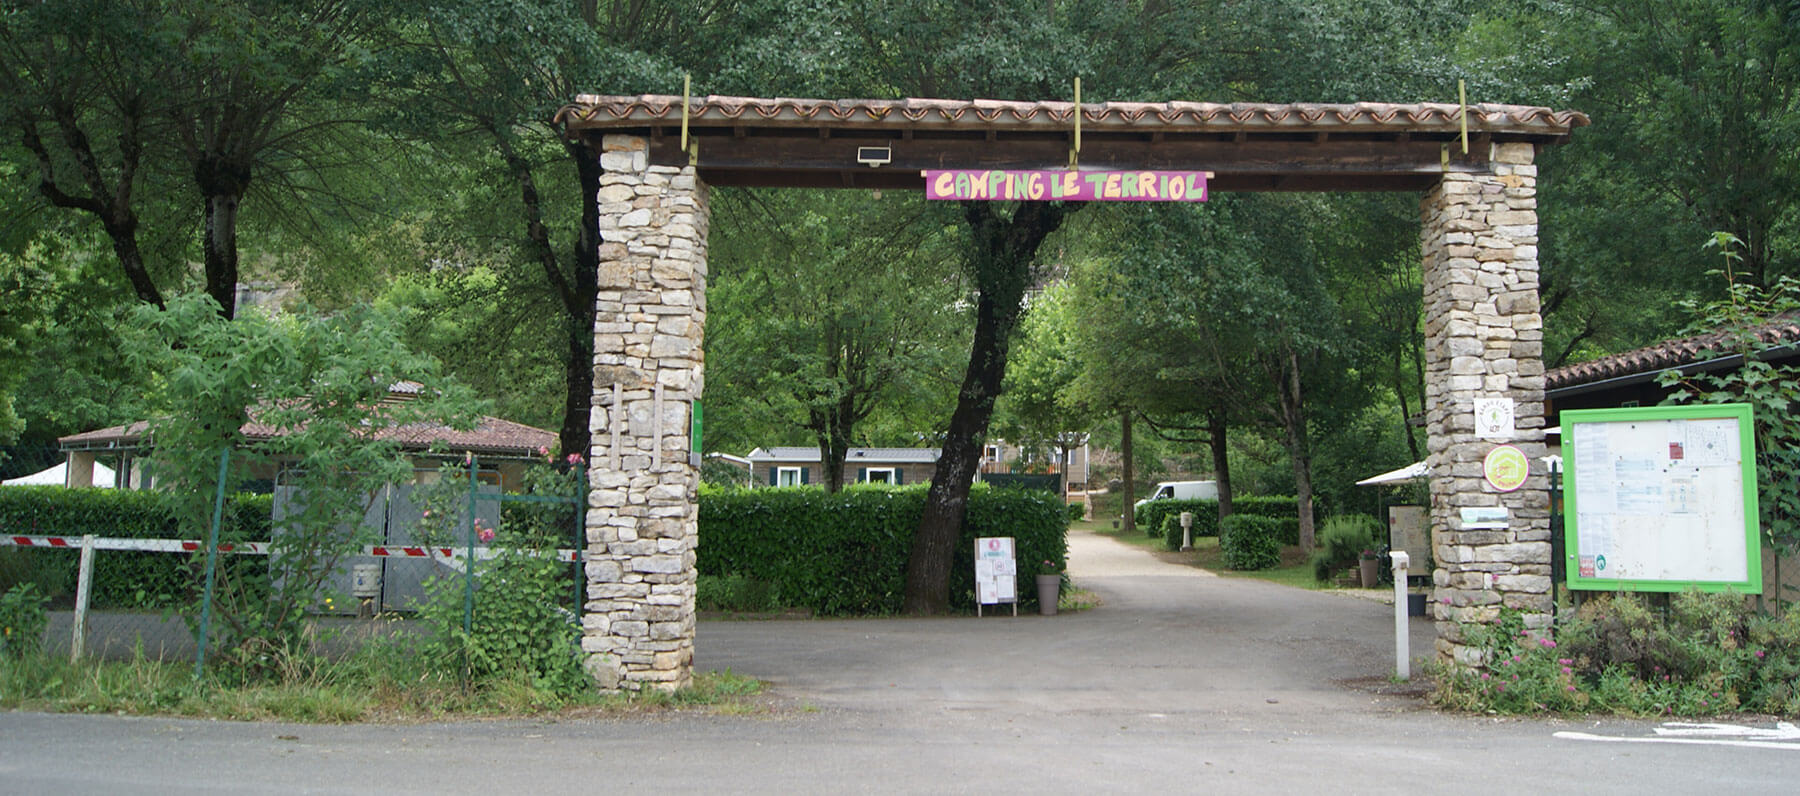 Camping le Terriol entry